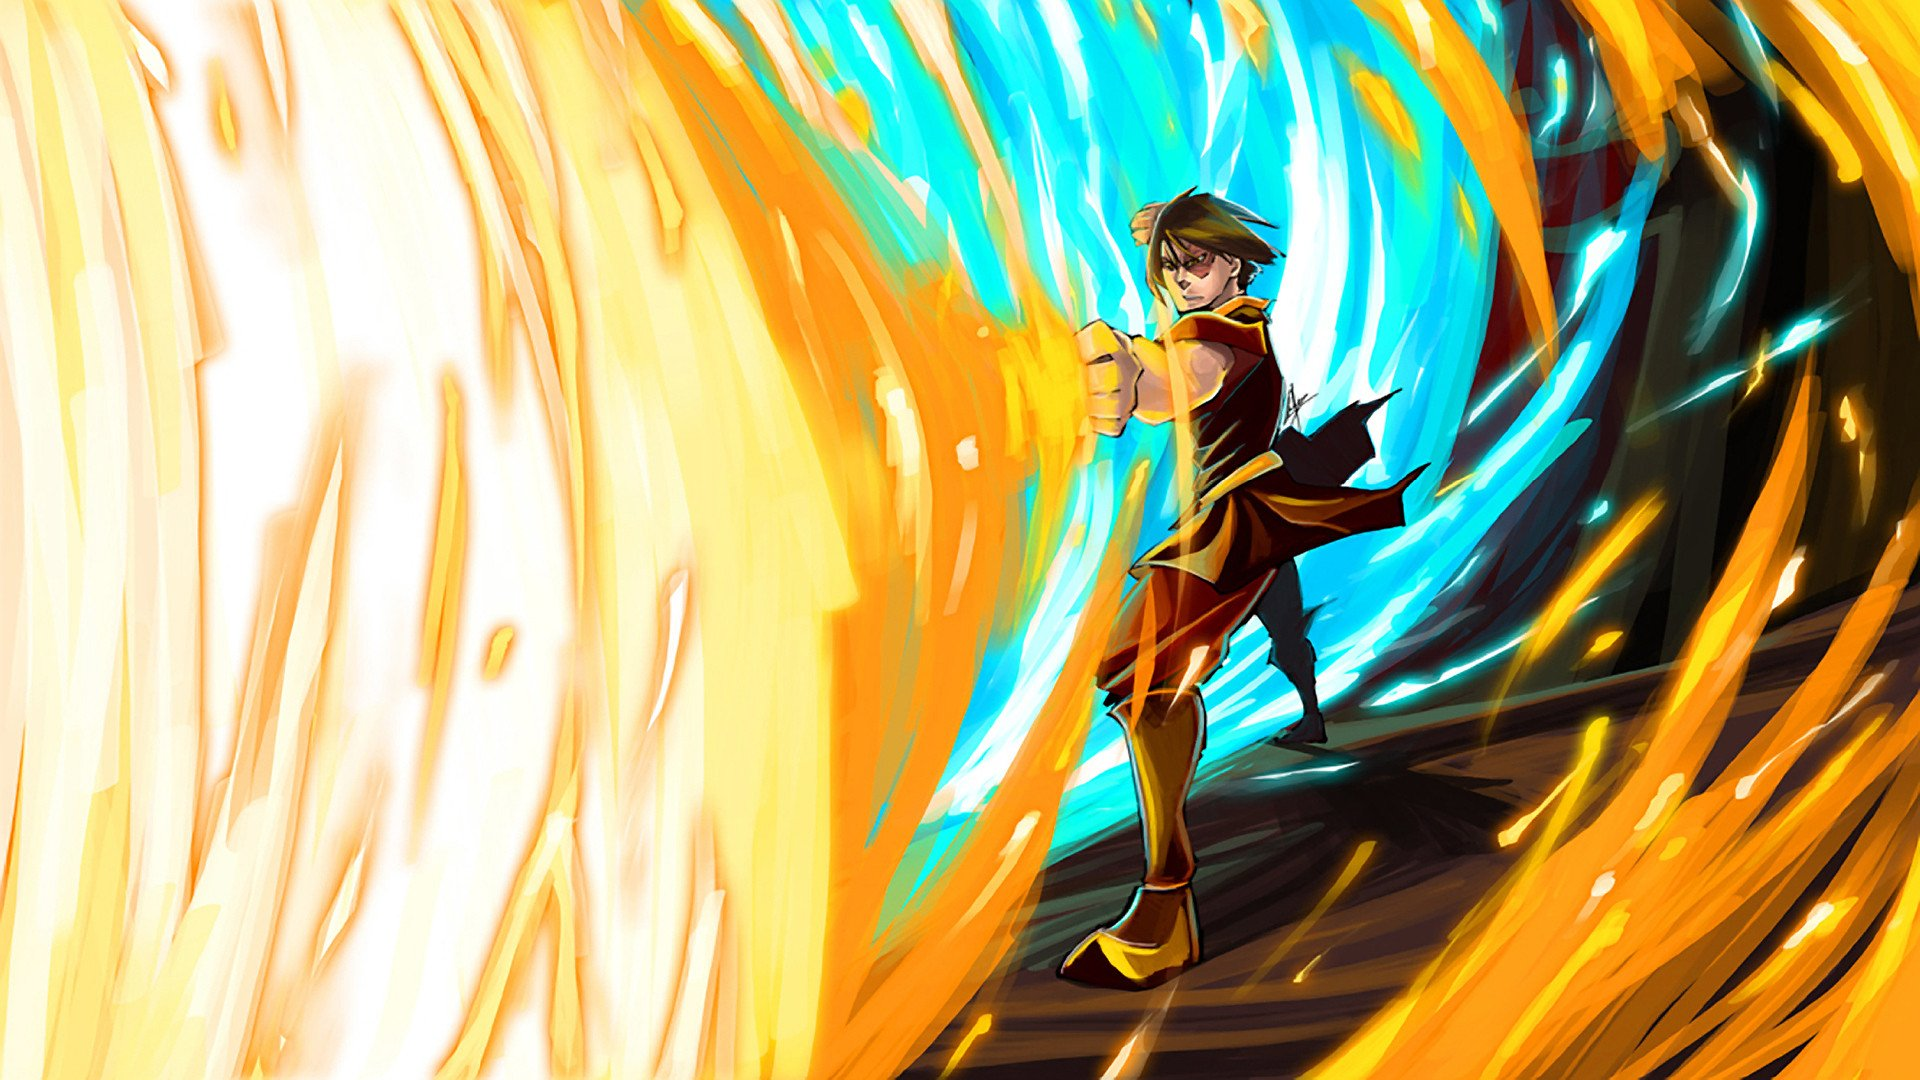 Naruto Wallpaper Hd 1366x768 Avatar The Last Airbender Full Hd Wallpaper And